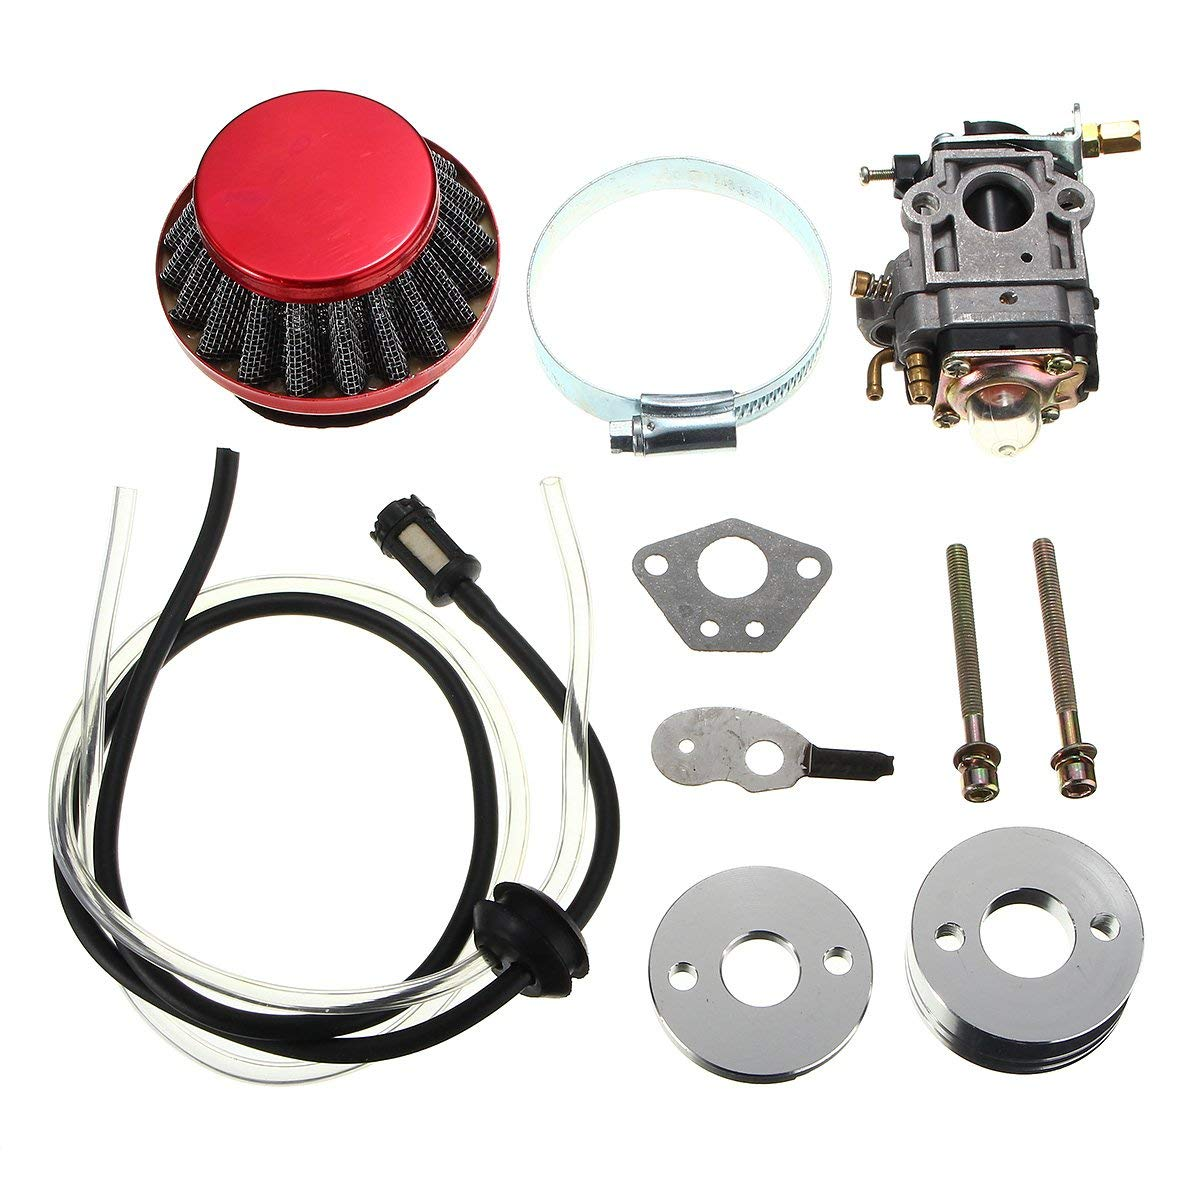 CoCocina Carburetor Air Filter Fuel Line Kit For 43cc 49cc Pocket Bike Scooter ATV Moto